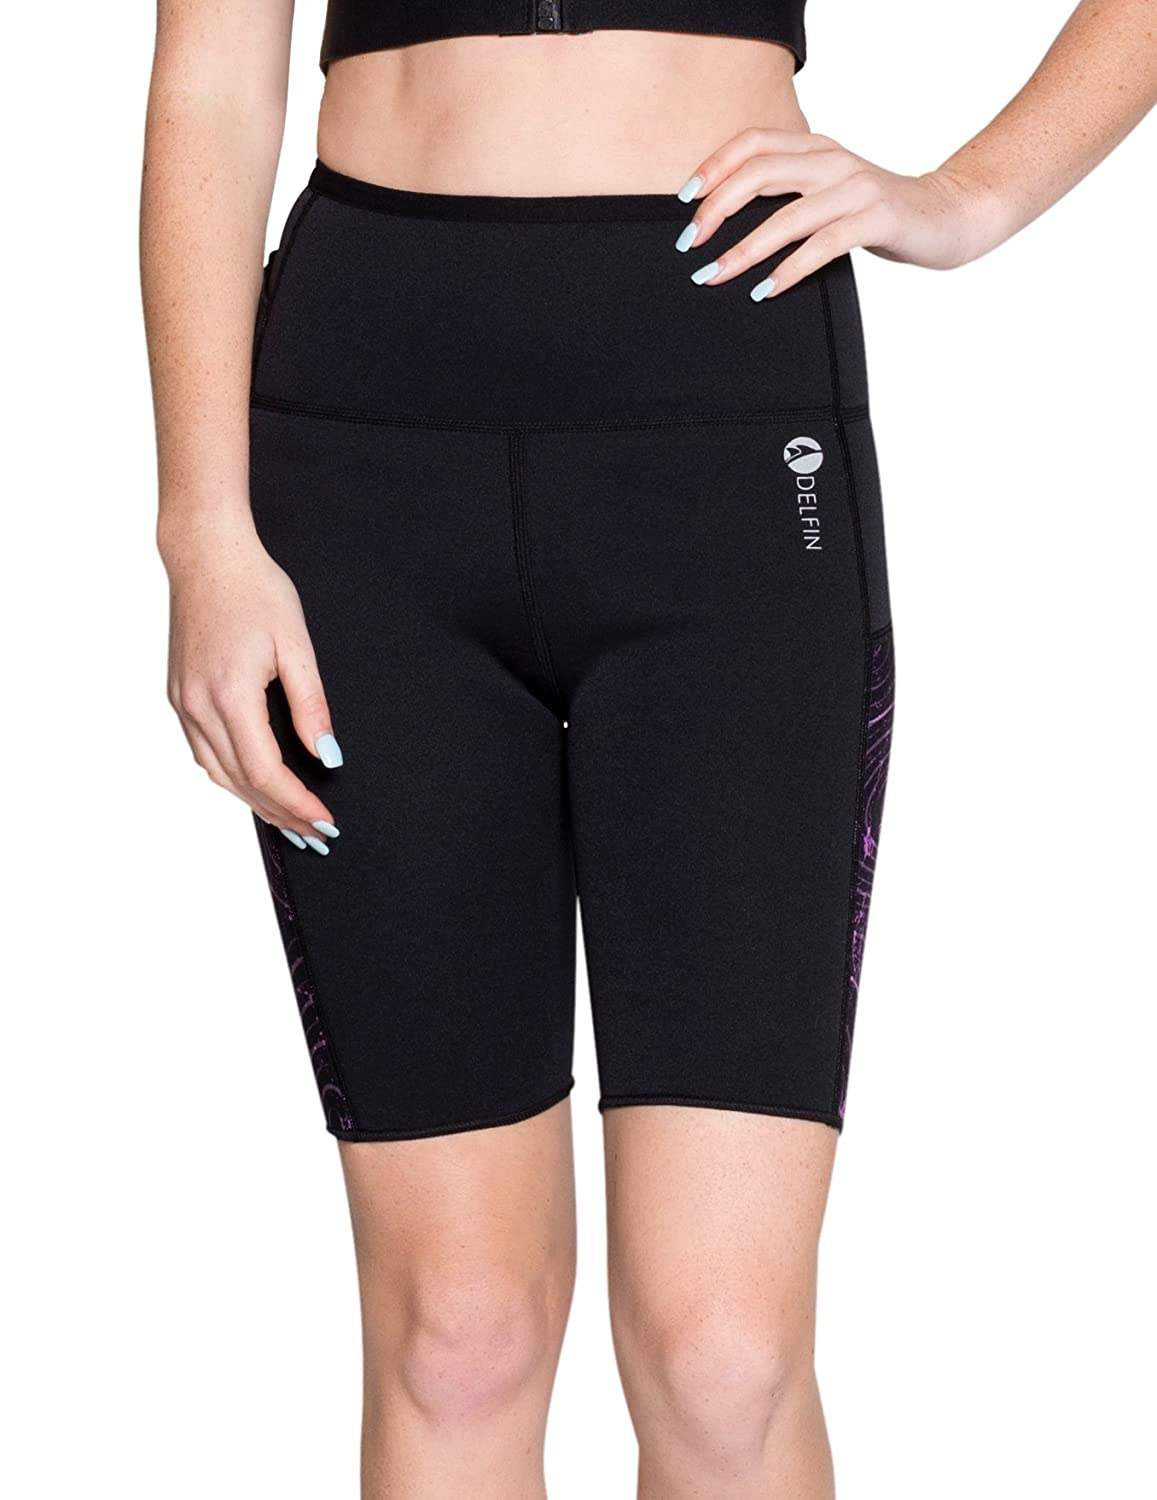 Delfin Spa Women's Heat Maximizing Neoprene Fitness Shorts - Petite thru Plus